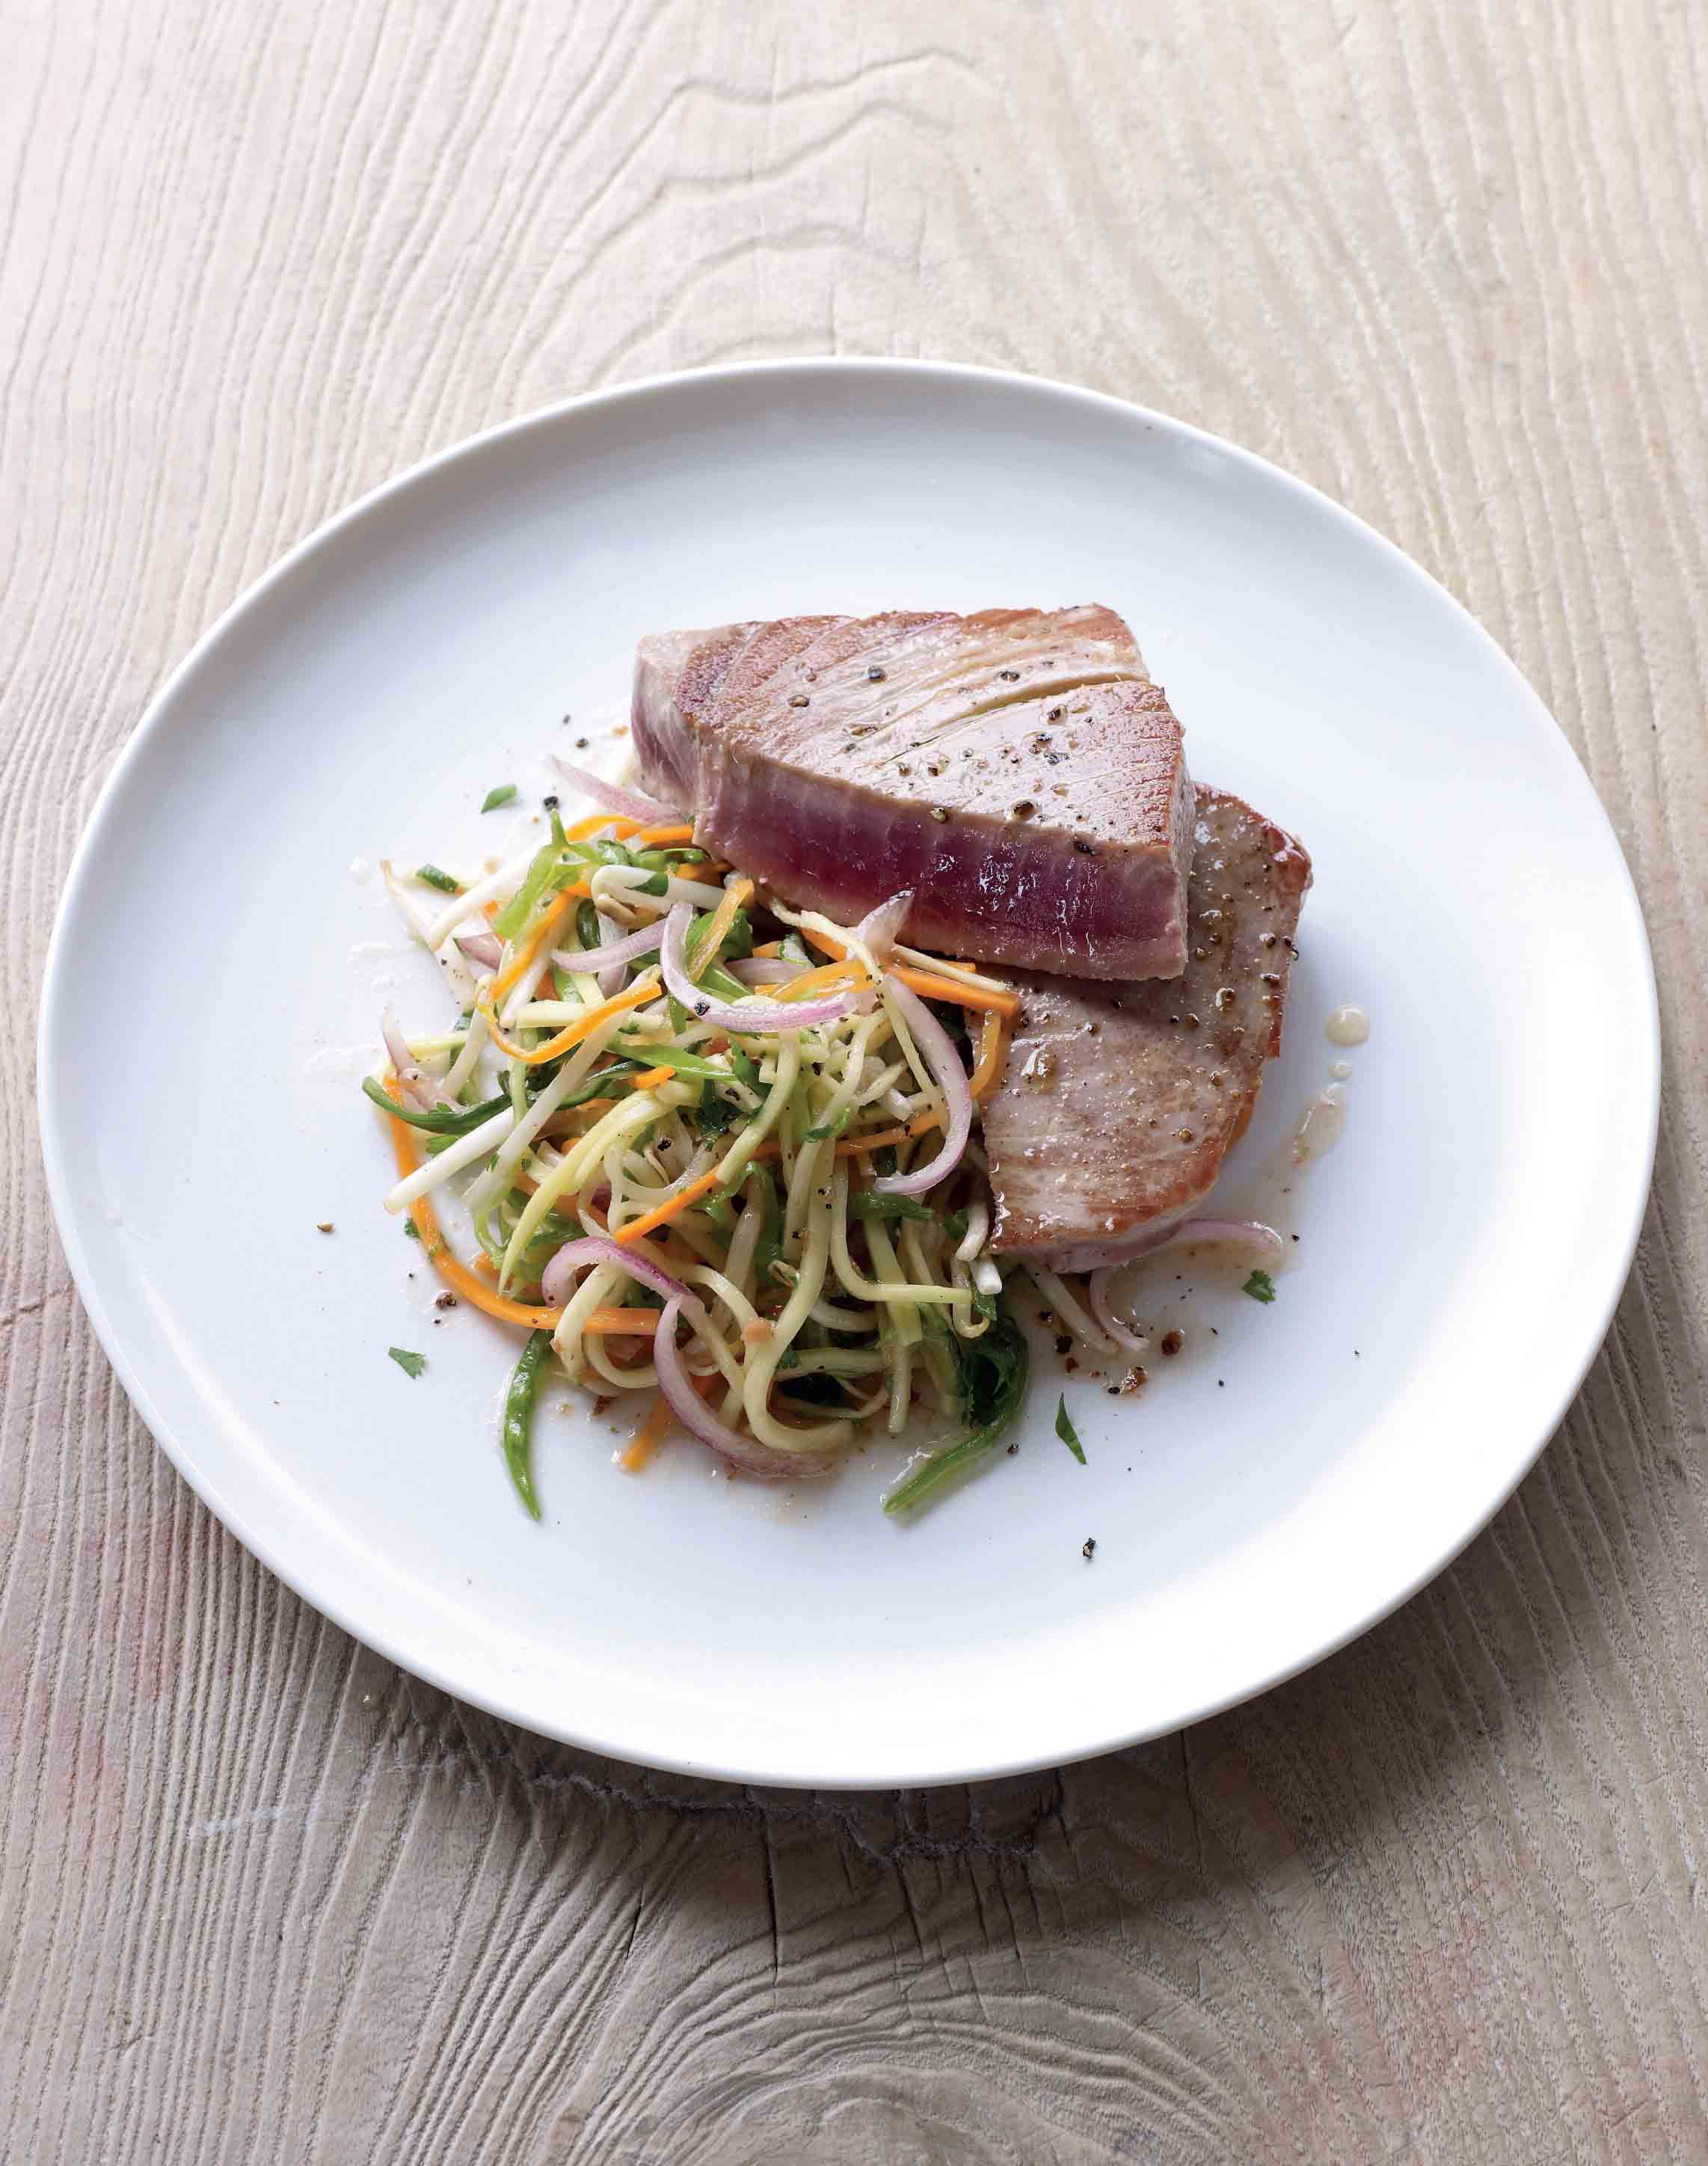 Seared tuna with a pickled vegetable salad